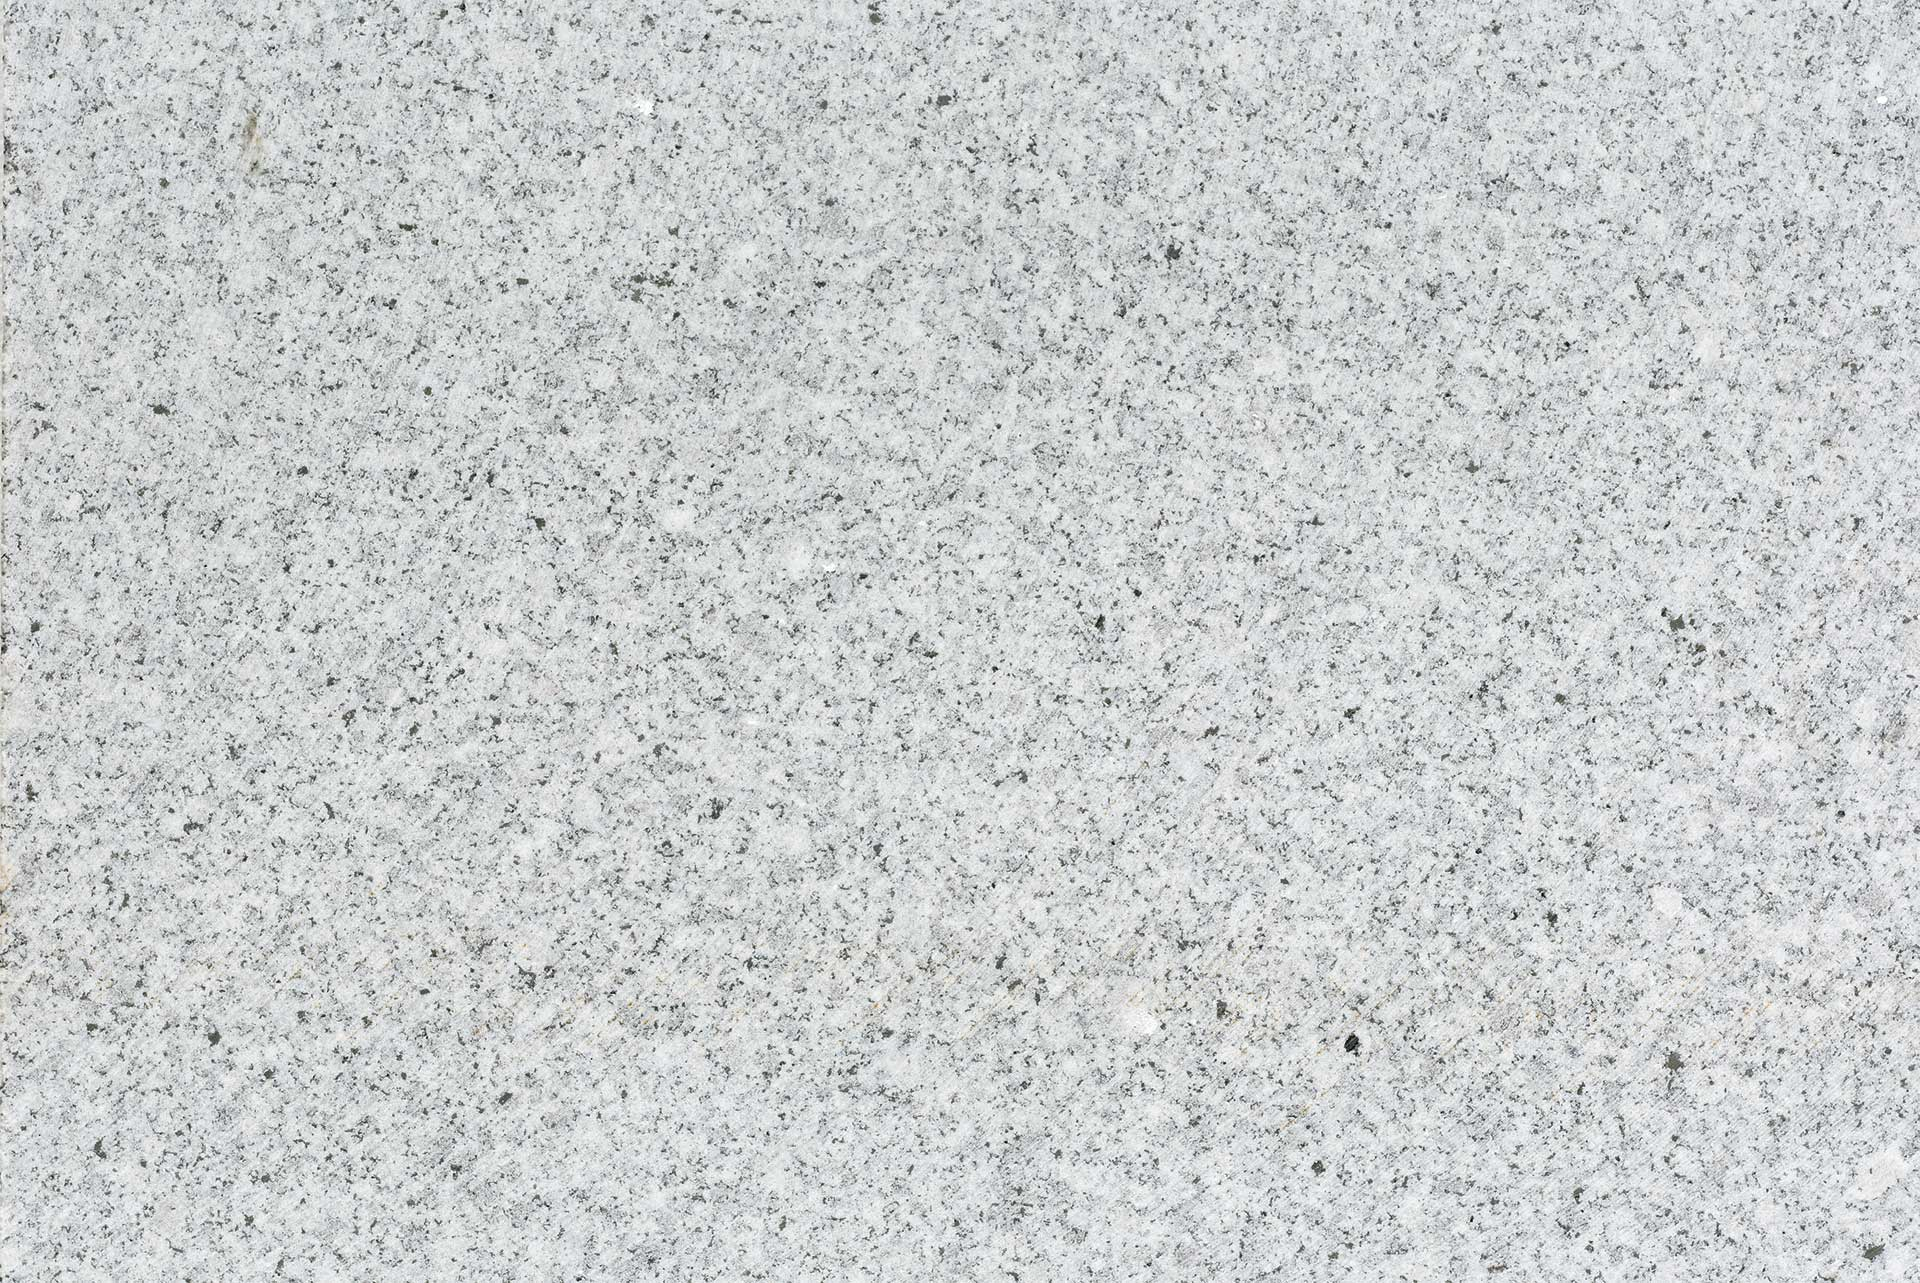 Granite Gris : Dalle pierre granit gris blanc tibet asian white jardivrac